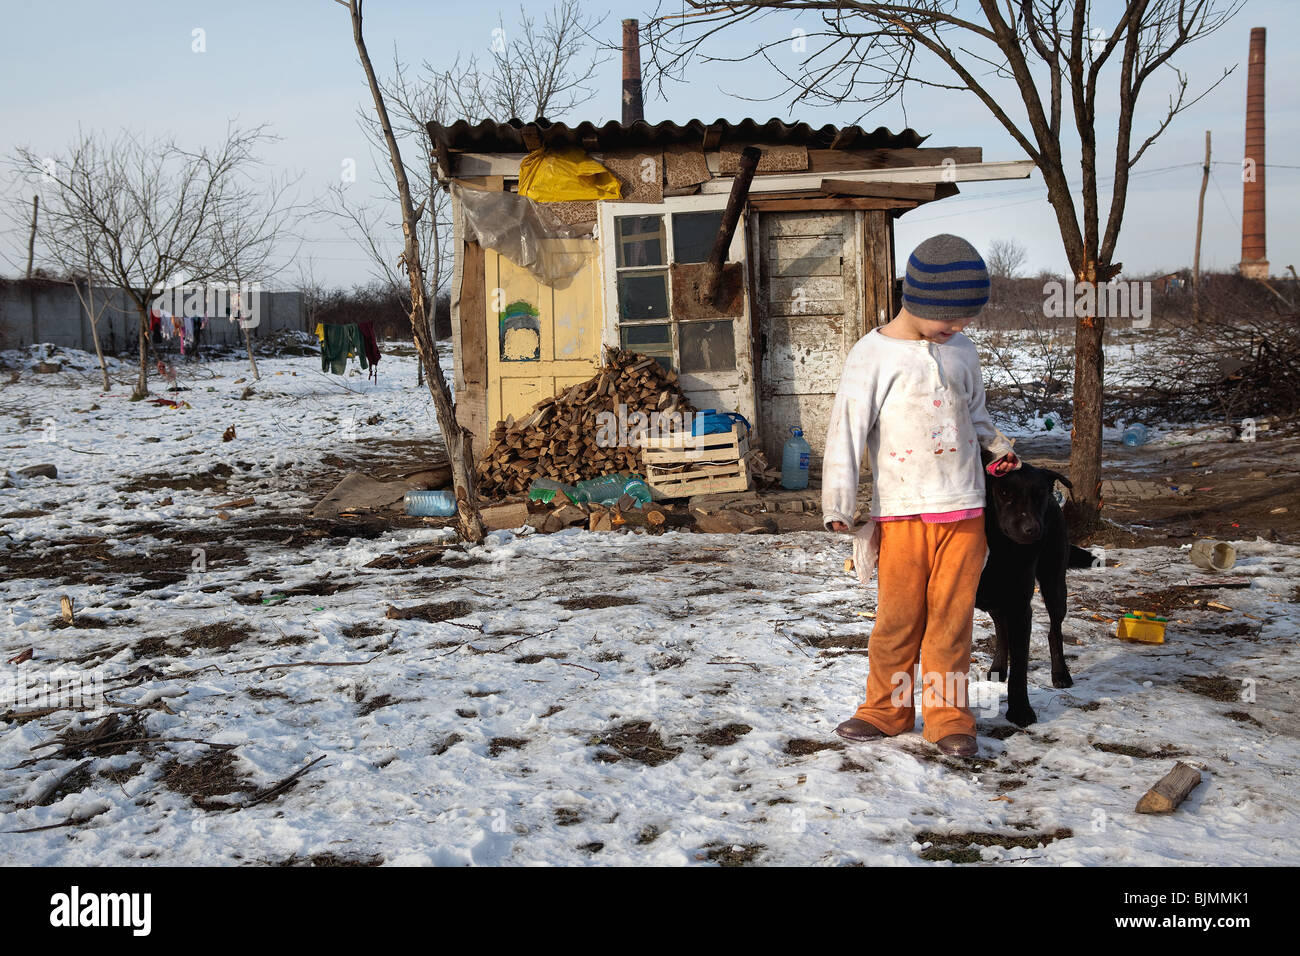 A young Roma girl stands outside the hut she shares with her family  in Arad, Romania, on the edge of the city rubbish - Stock Image